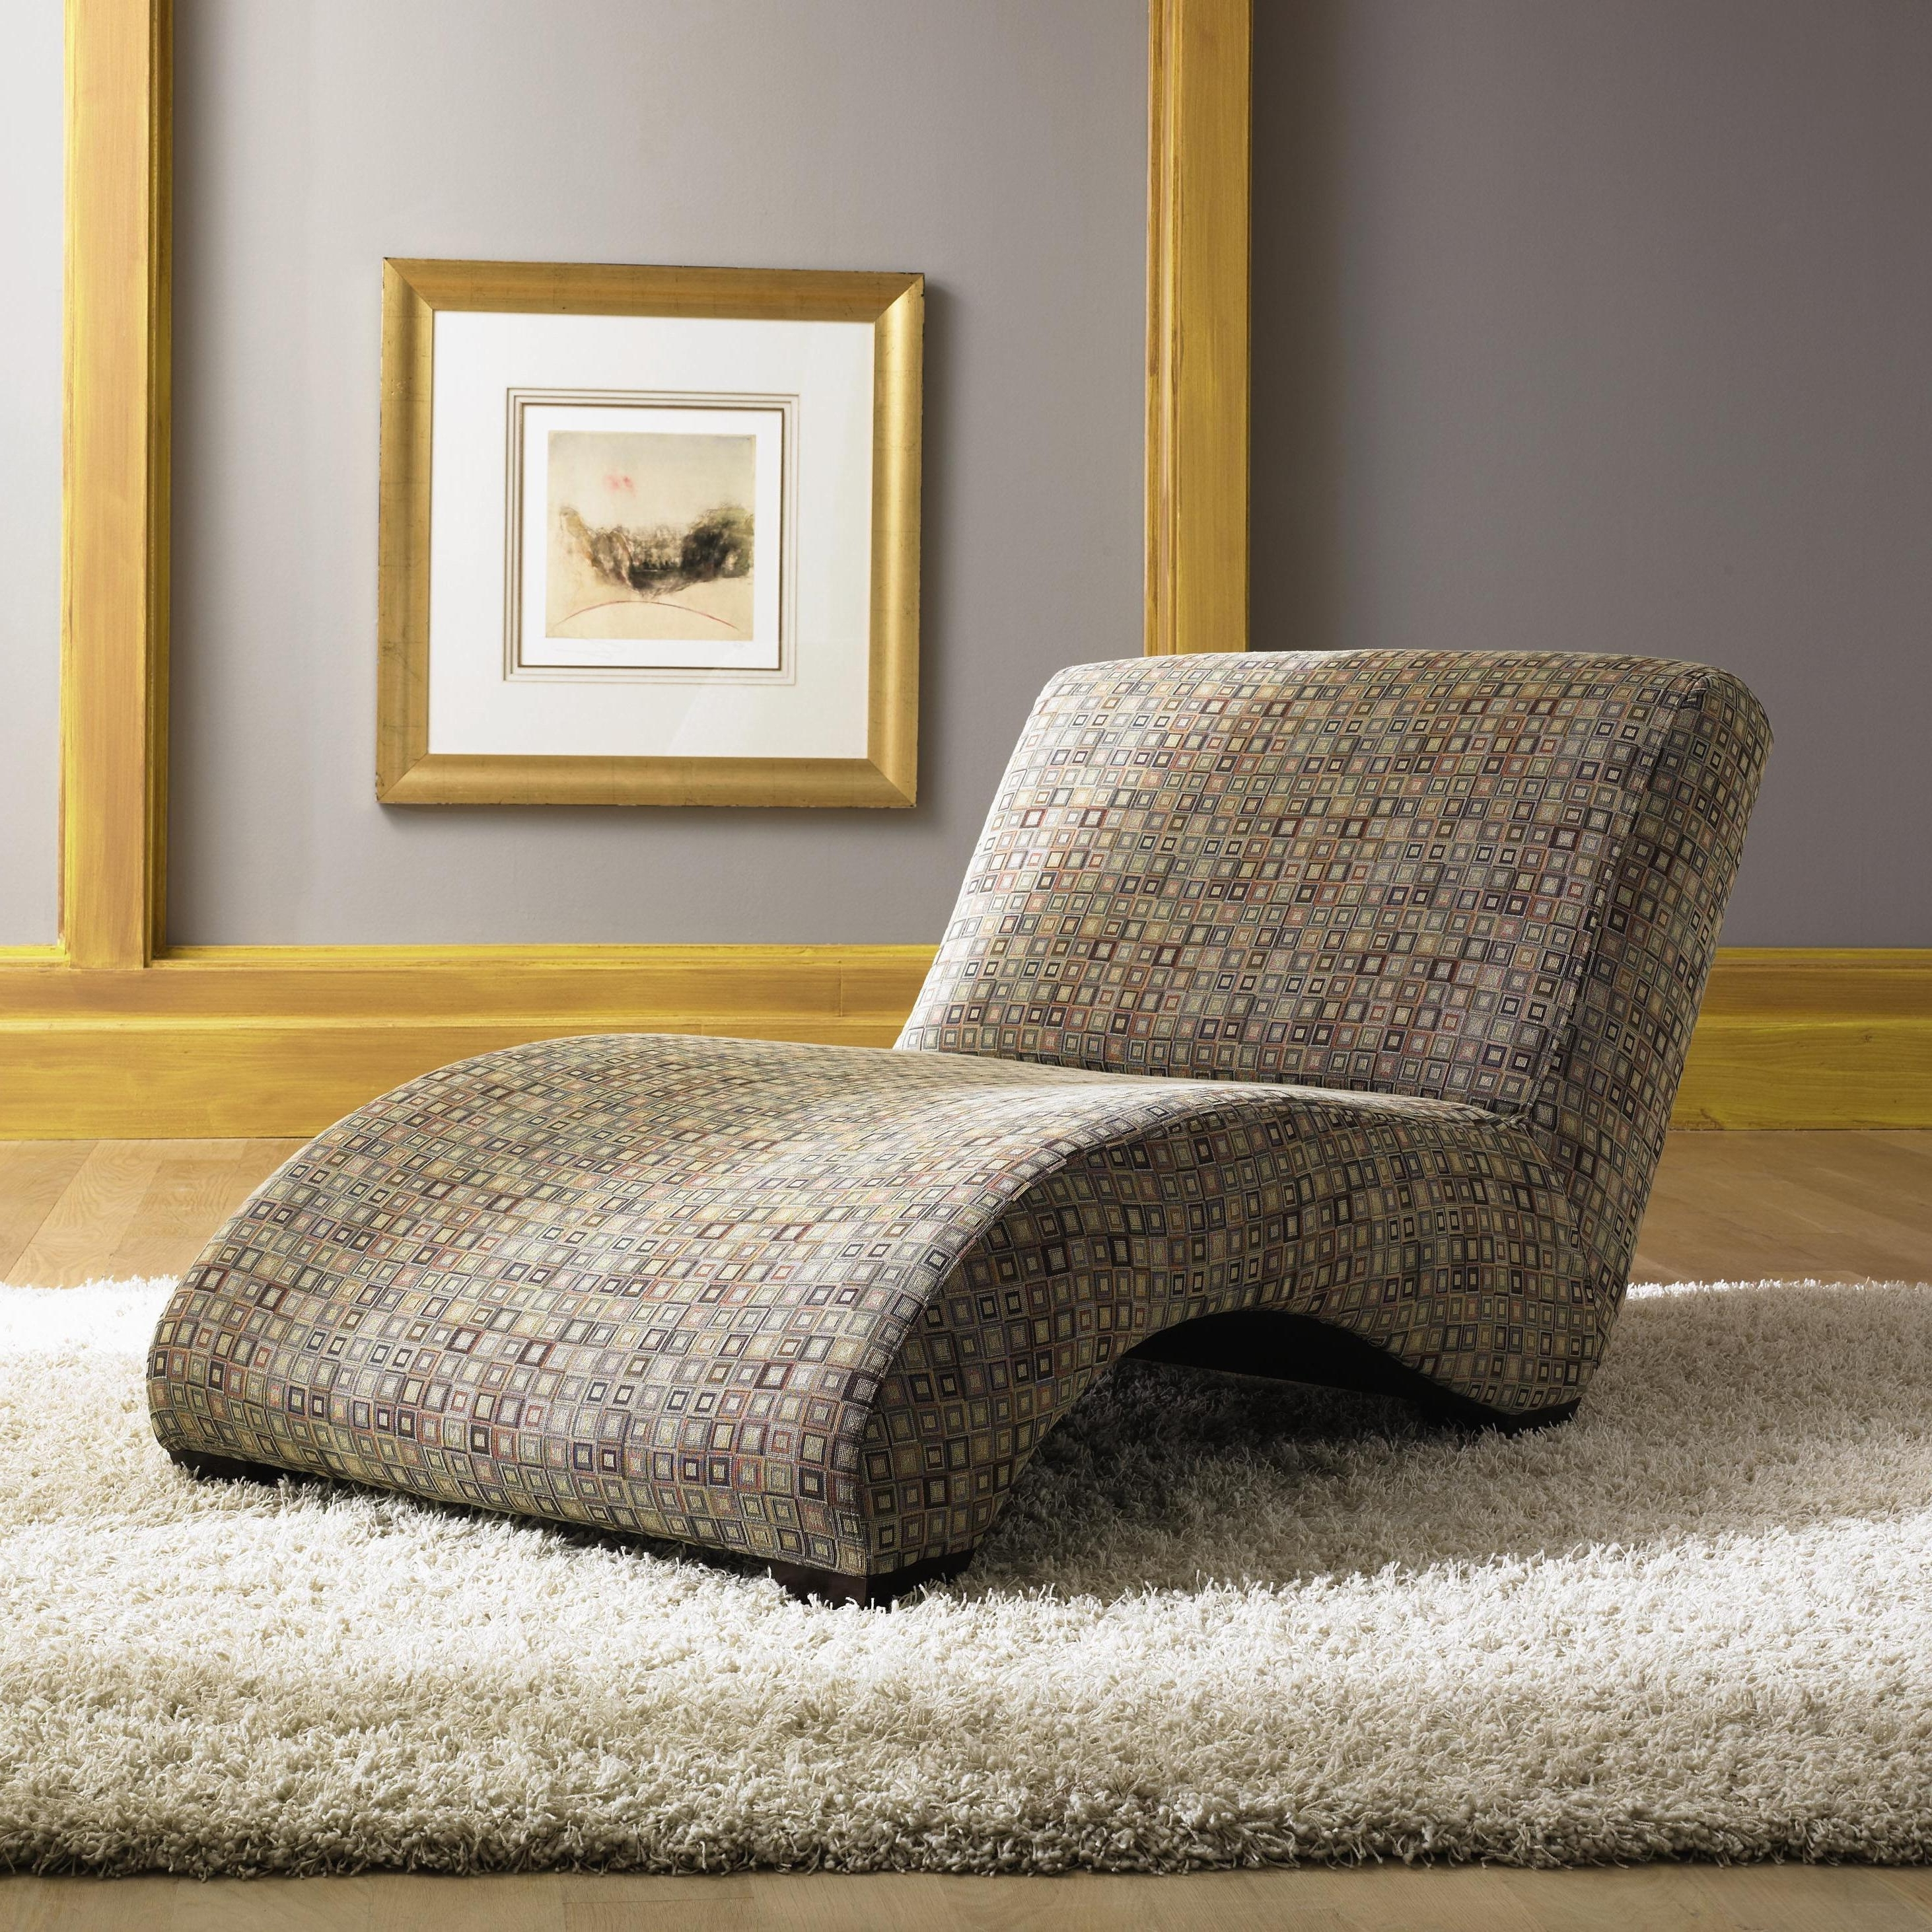 Current Chaise Lounge Chairs For Small Spaces Pertaining To Convertible Chair : Small Chaise Lounge Oversized Living Room (View 7 of 15)